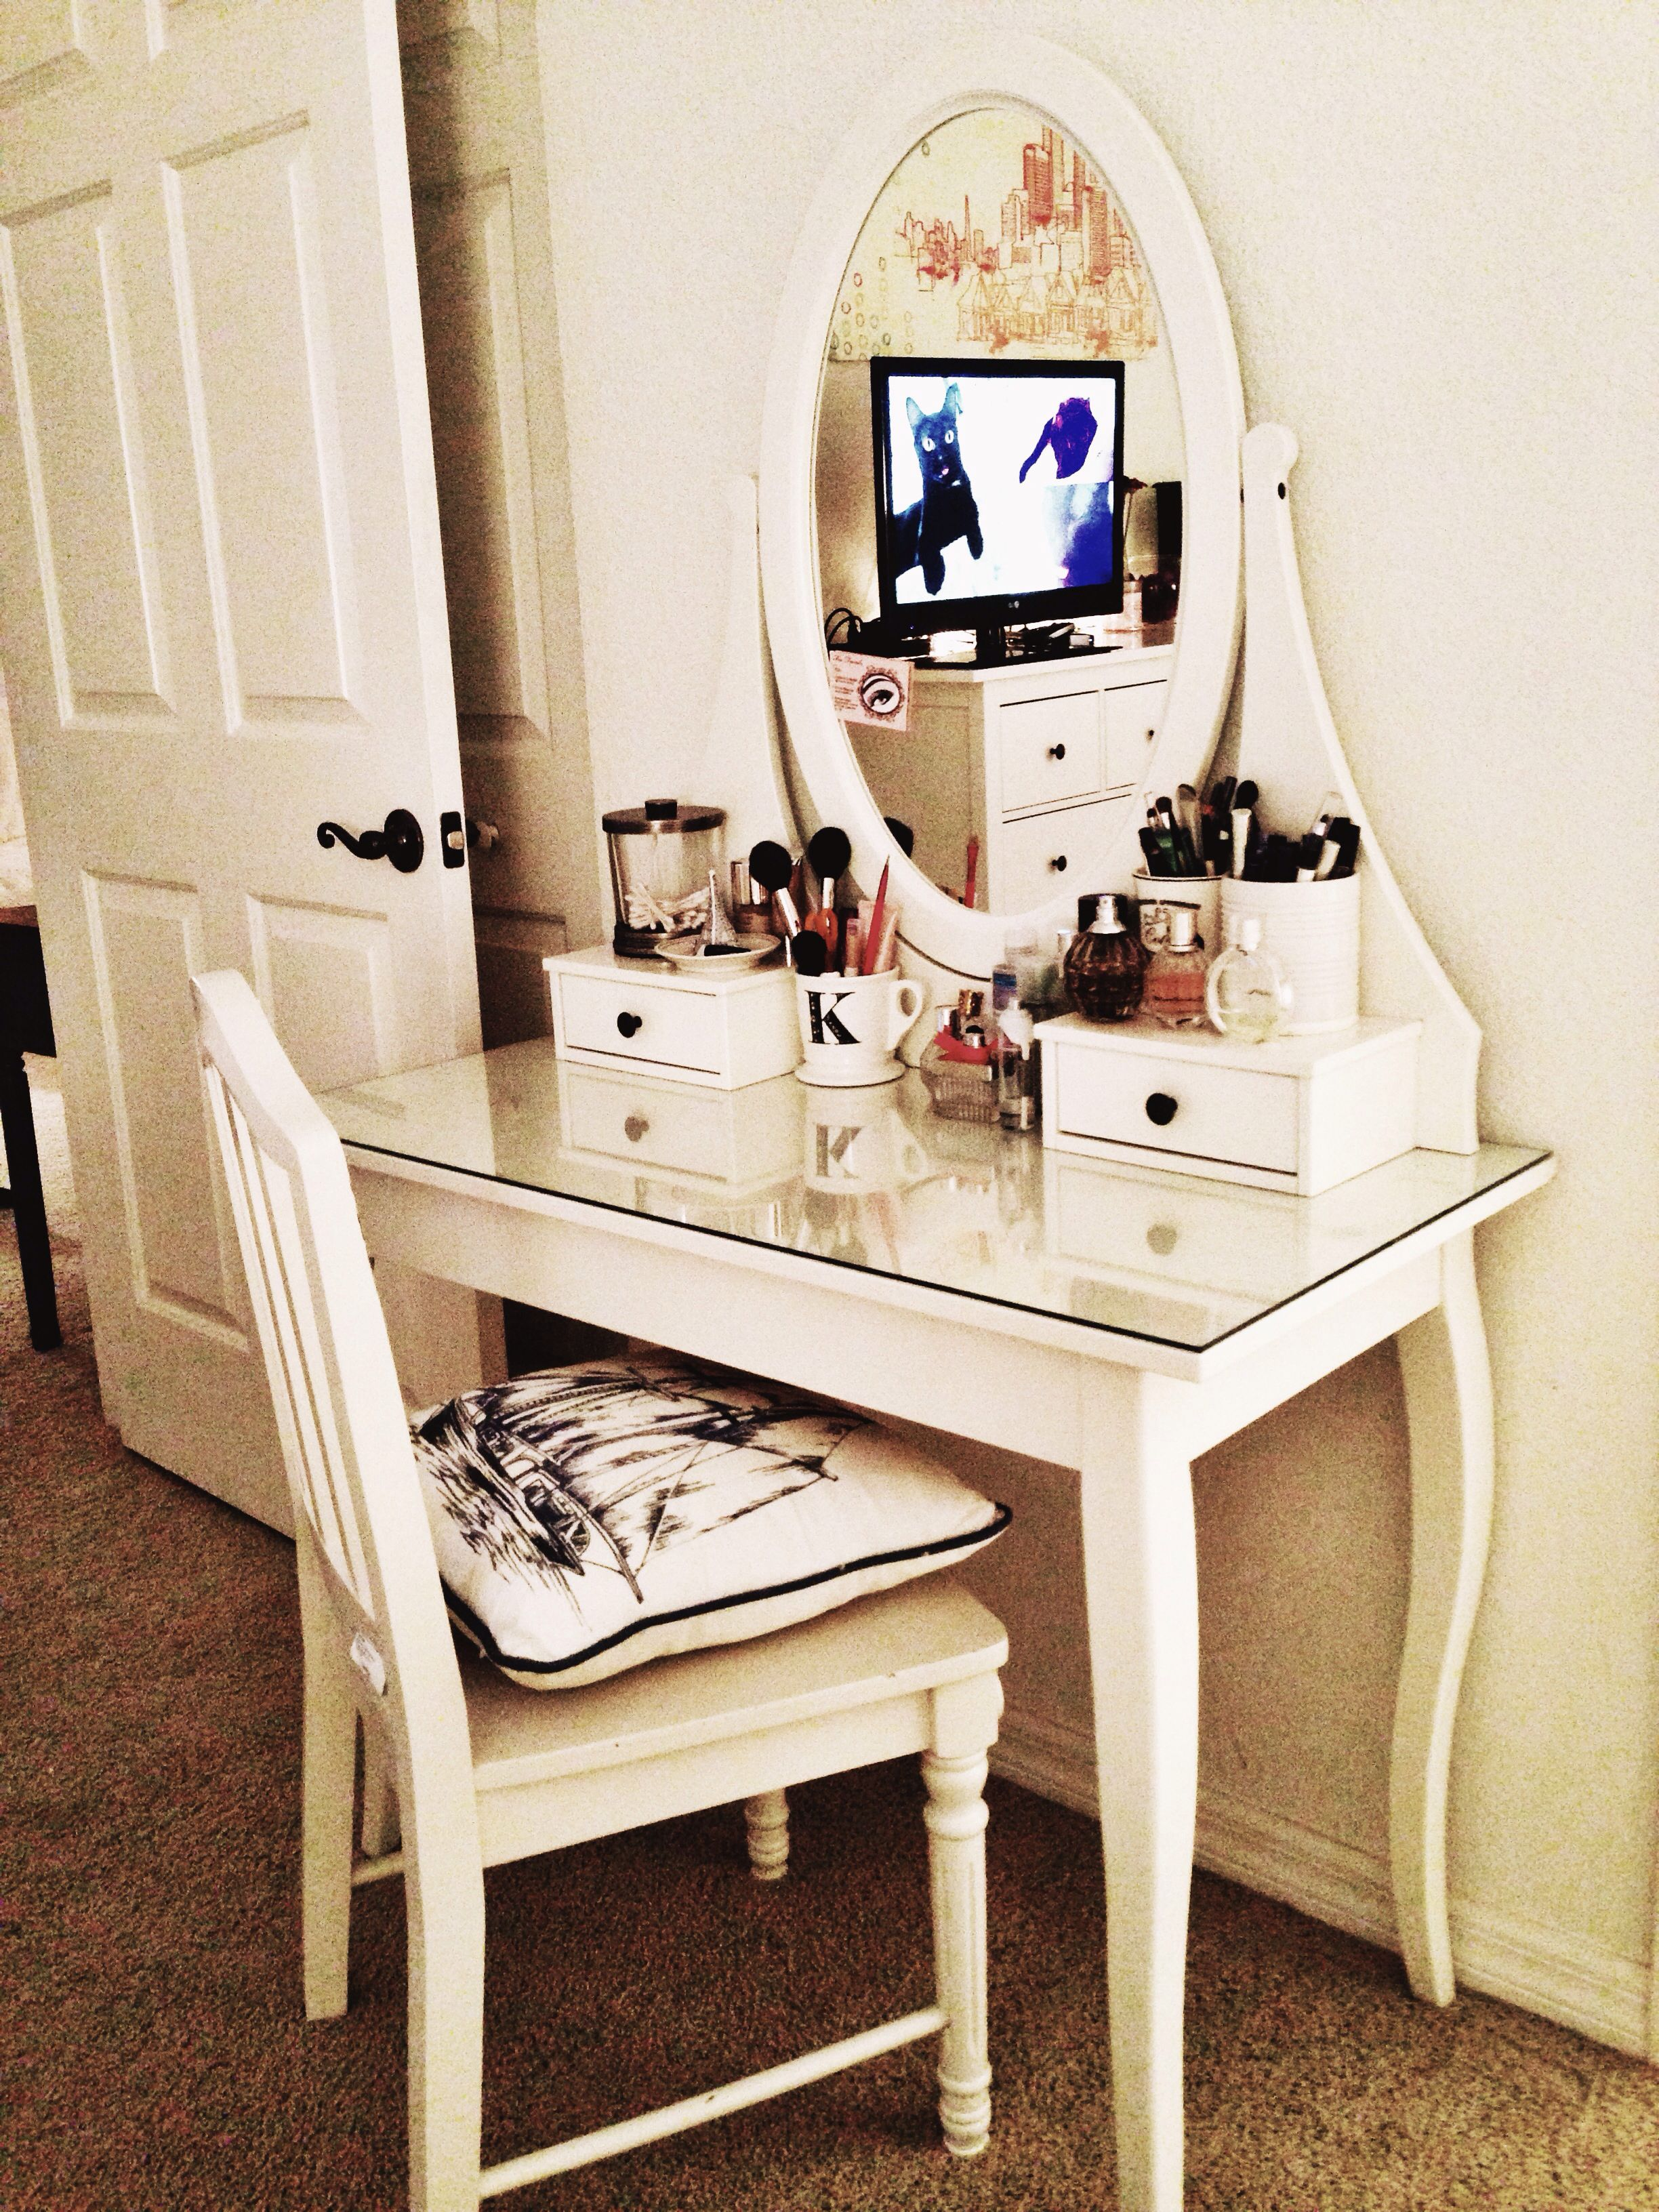 My new Hemnes dressing table from ikea!!!! Yay! Ikea